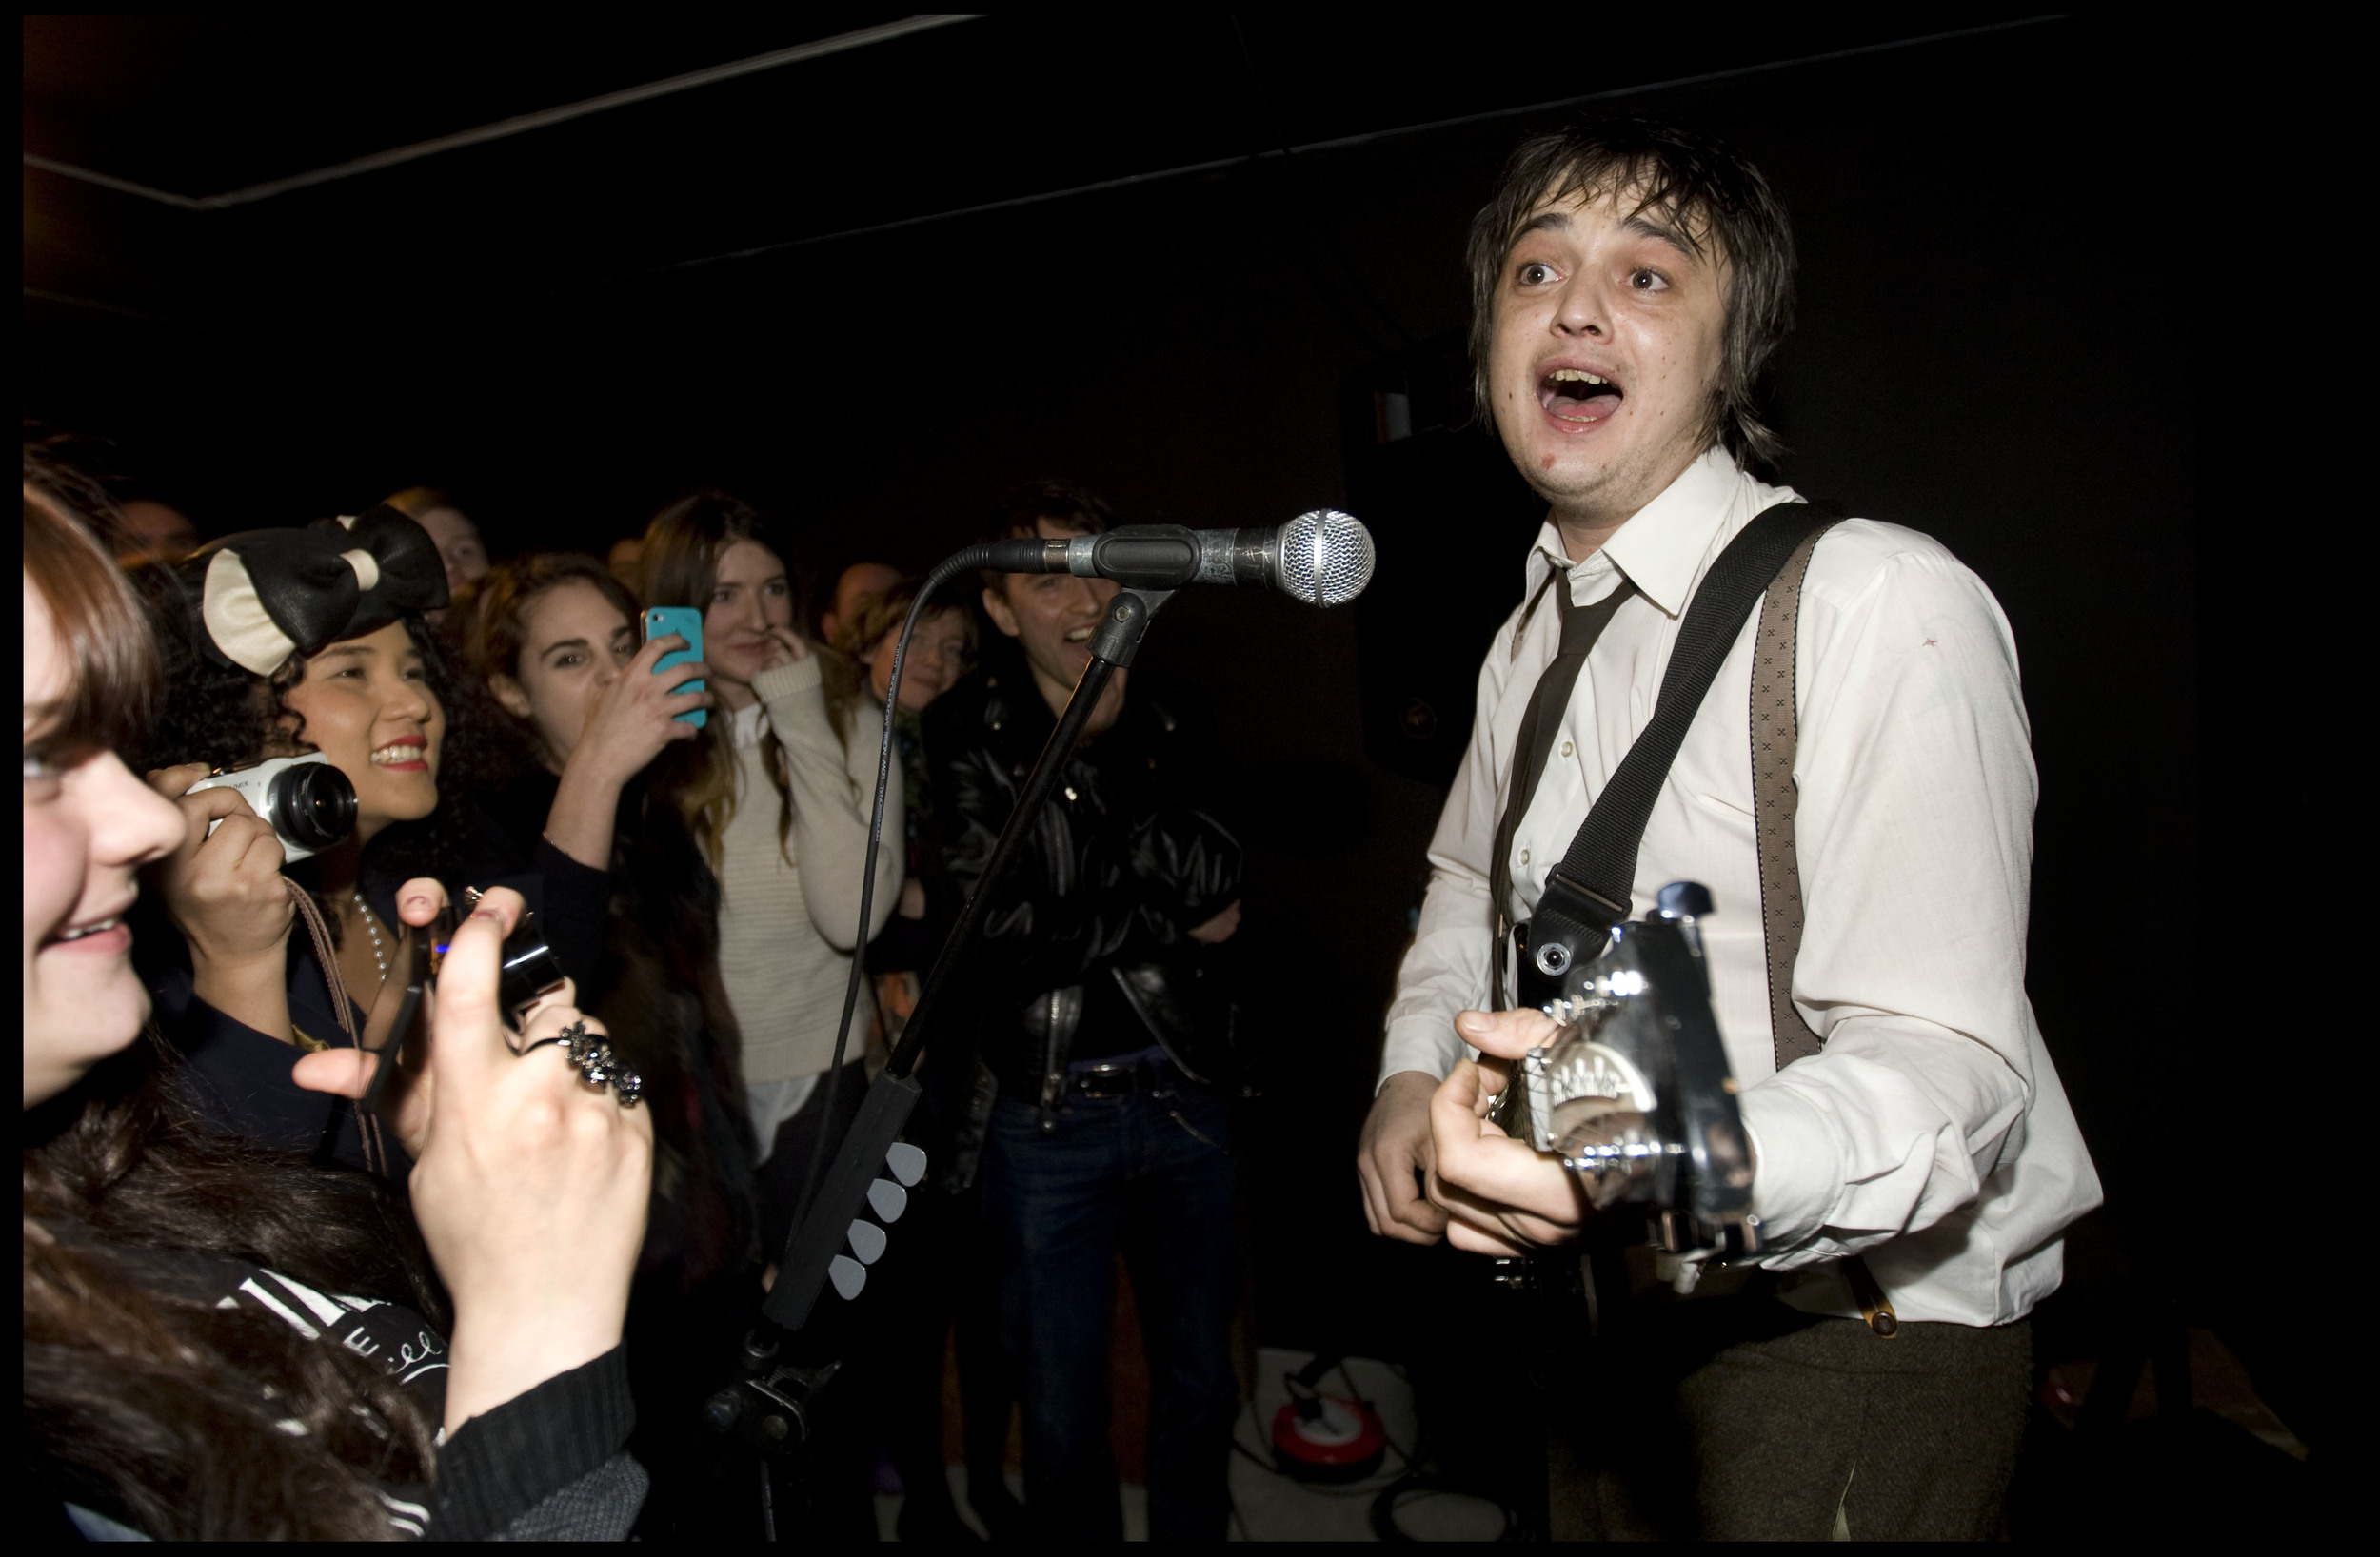 Pete Doherty plays at his art exhibition - Pete Doherty on blood